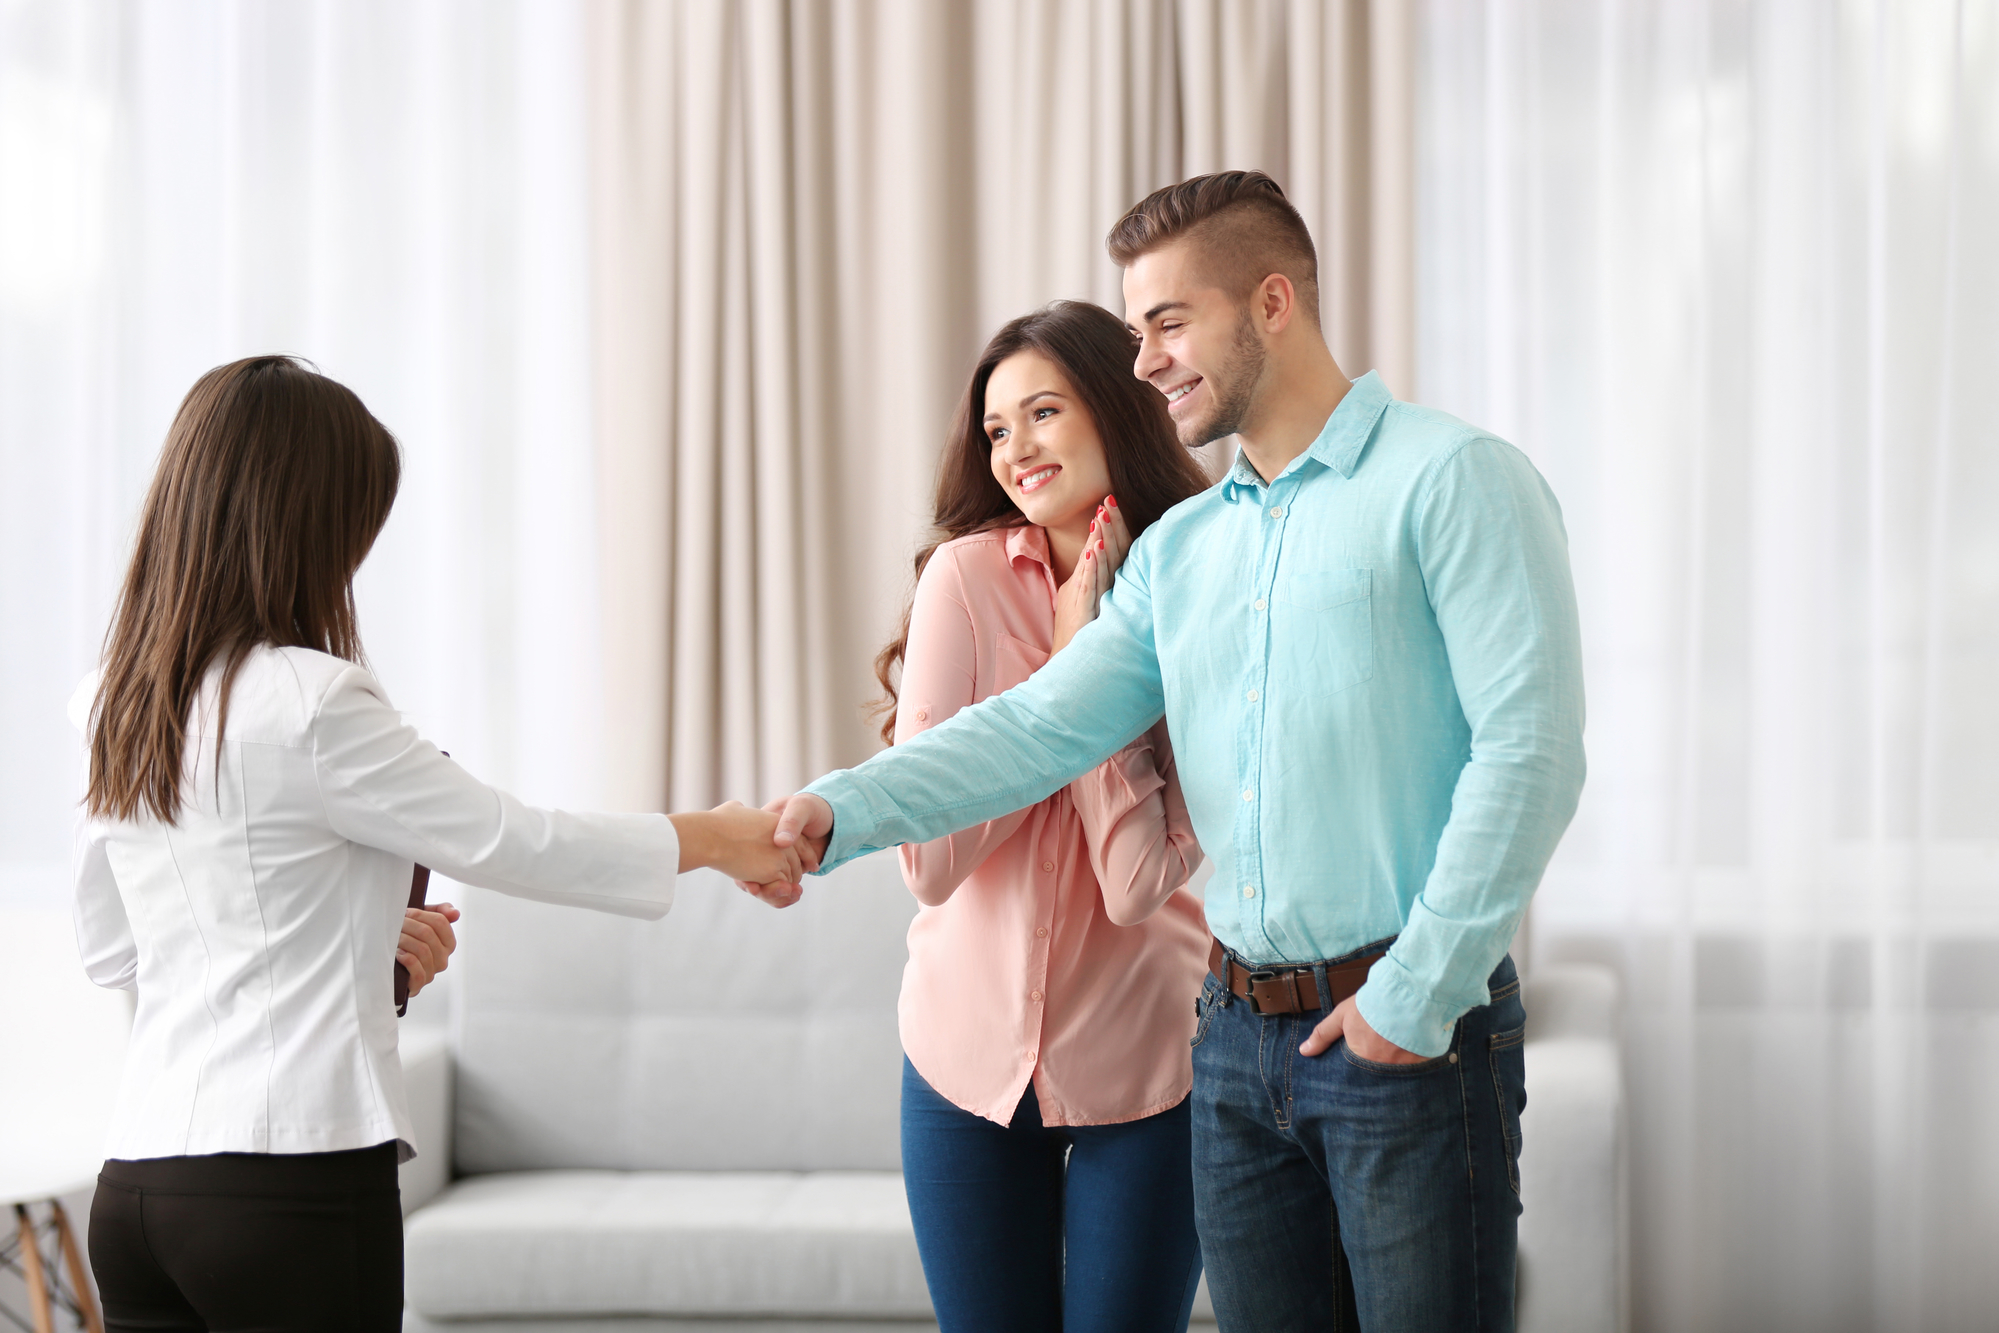 A man and a woman happily shake hands with another woman